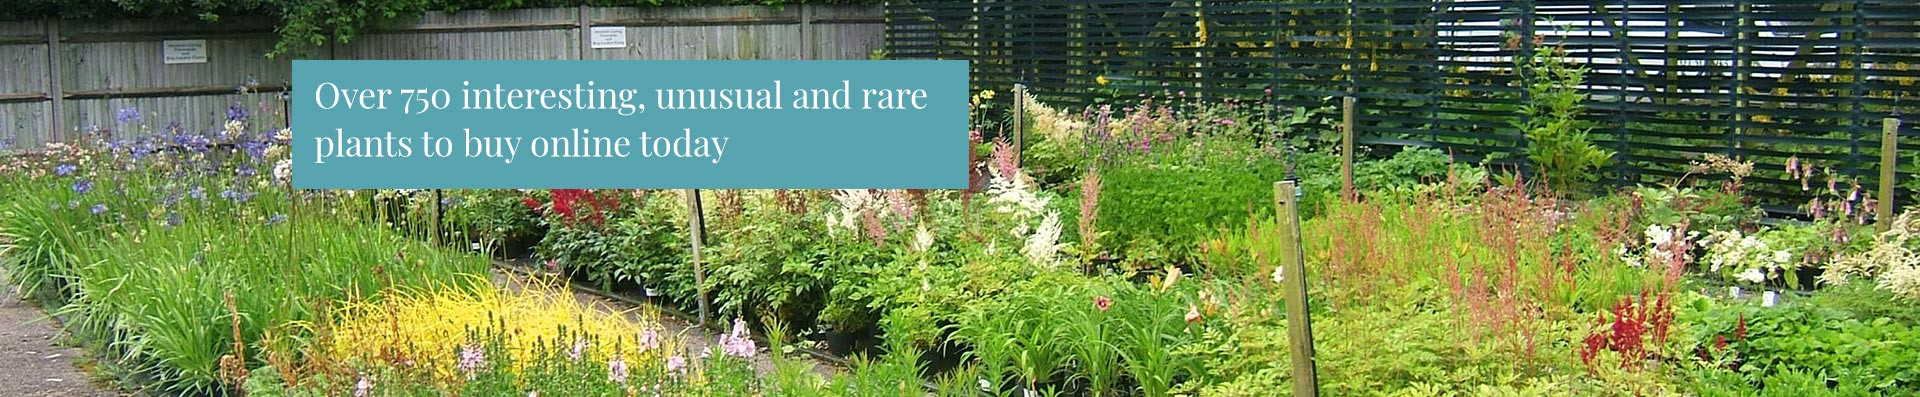 Over 750 interesting, unusual and rare plants to buy online today!